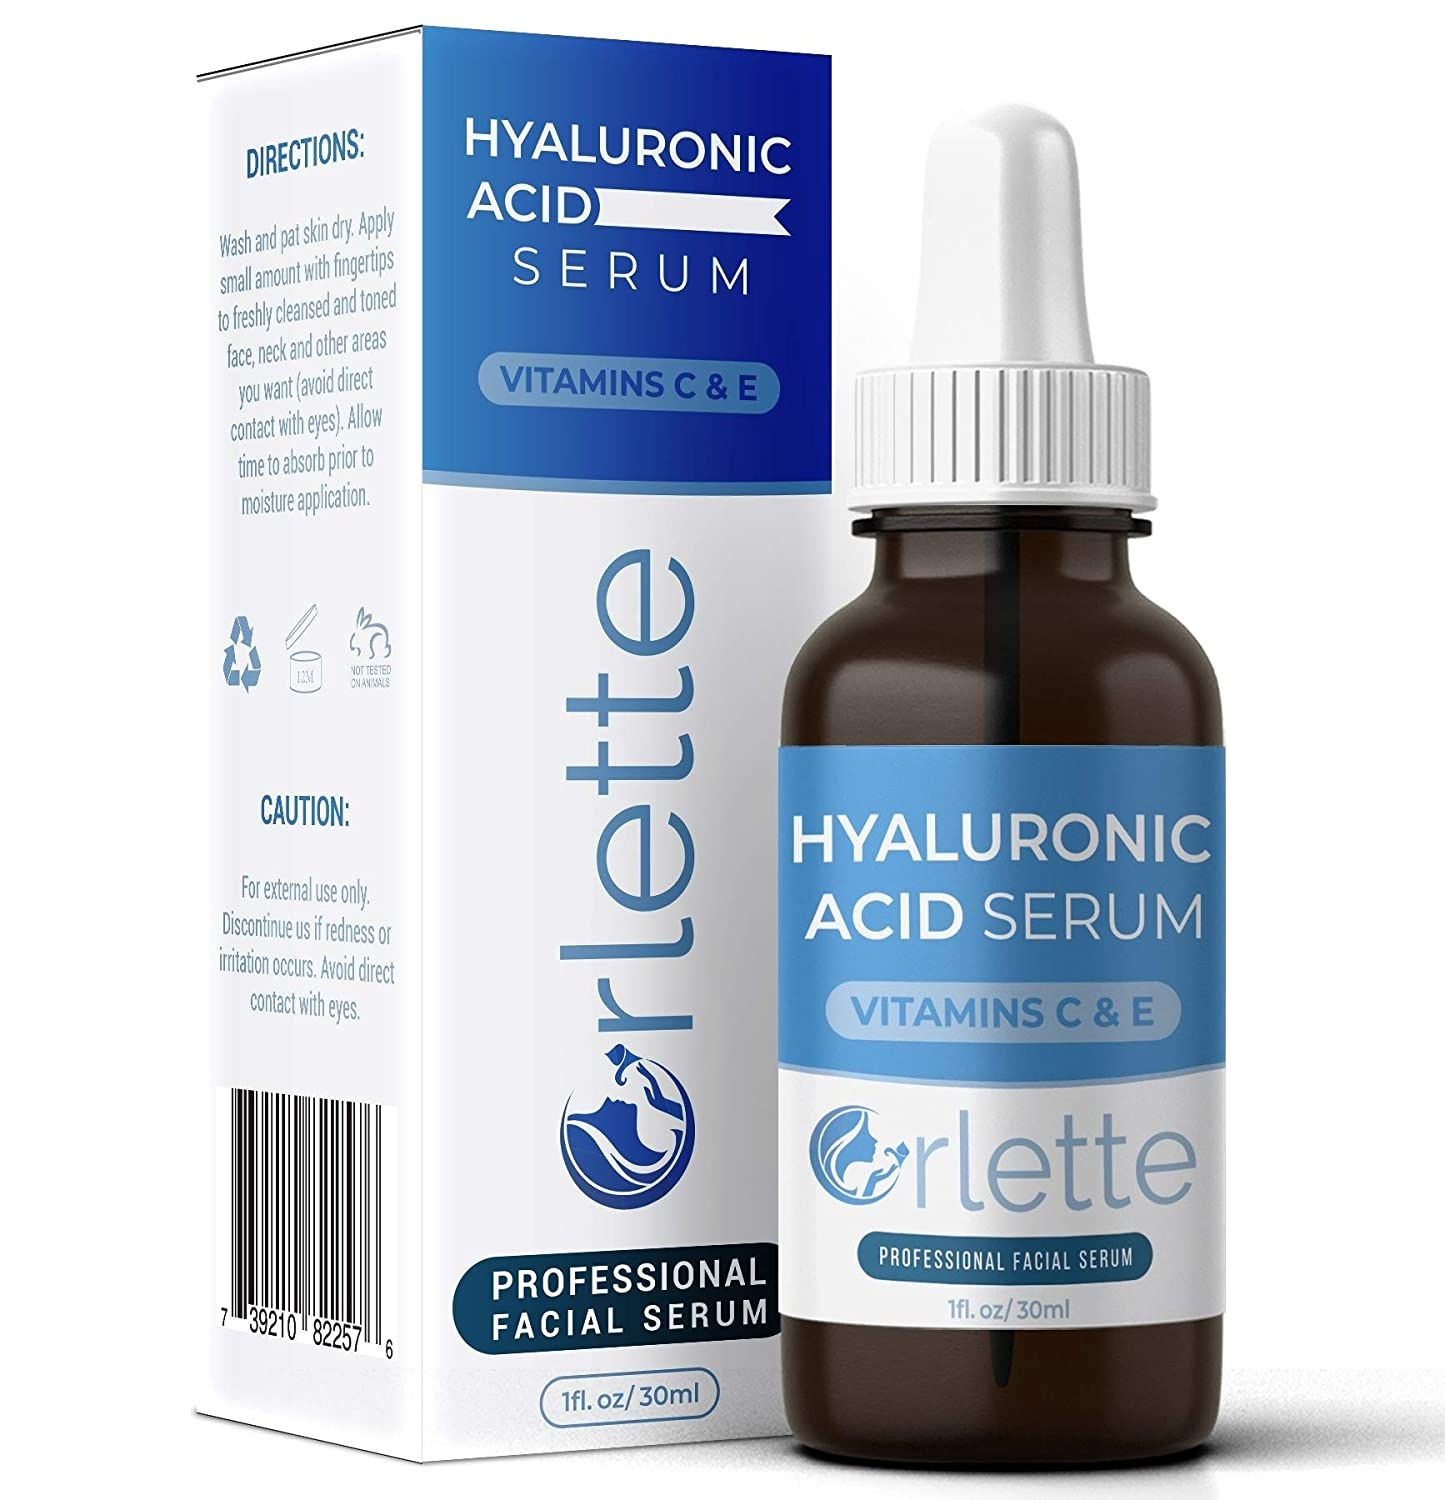 Orlette Hyaluronic Acid Serum Skin Care - Anti-Aging Treatment with Hydrating Vitamin C and Vitamin E - Hydration, Moisturizing and Fine Line Wrinkle Filler - Acne Scar Lightening, Face Plumper